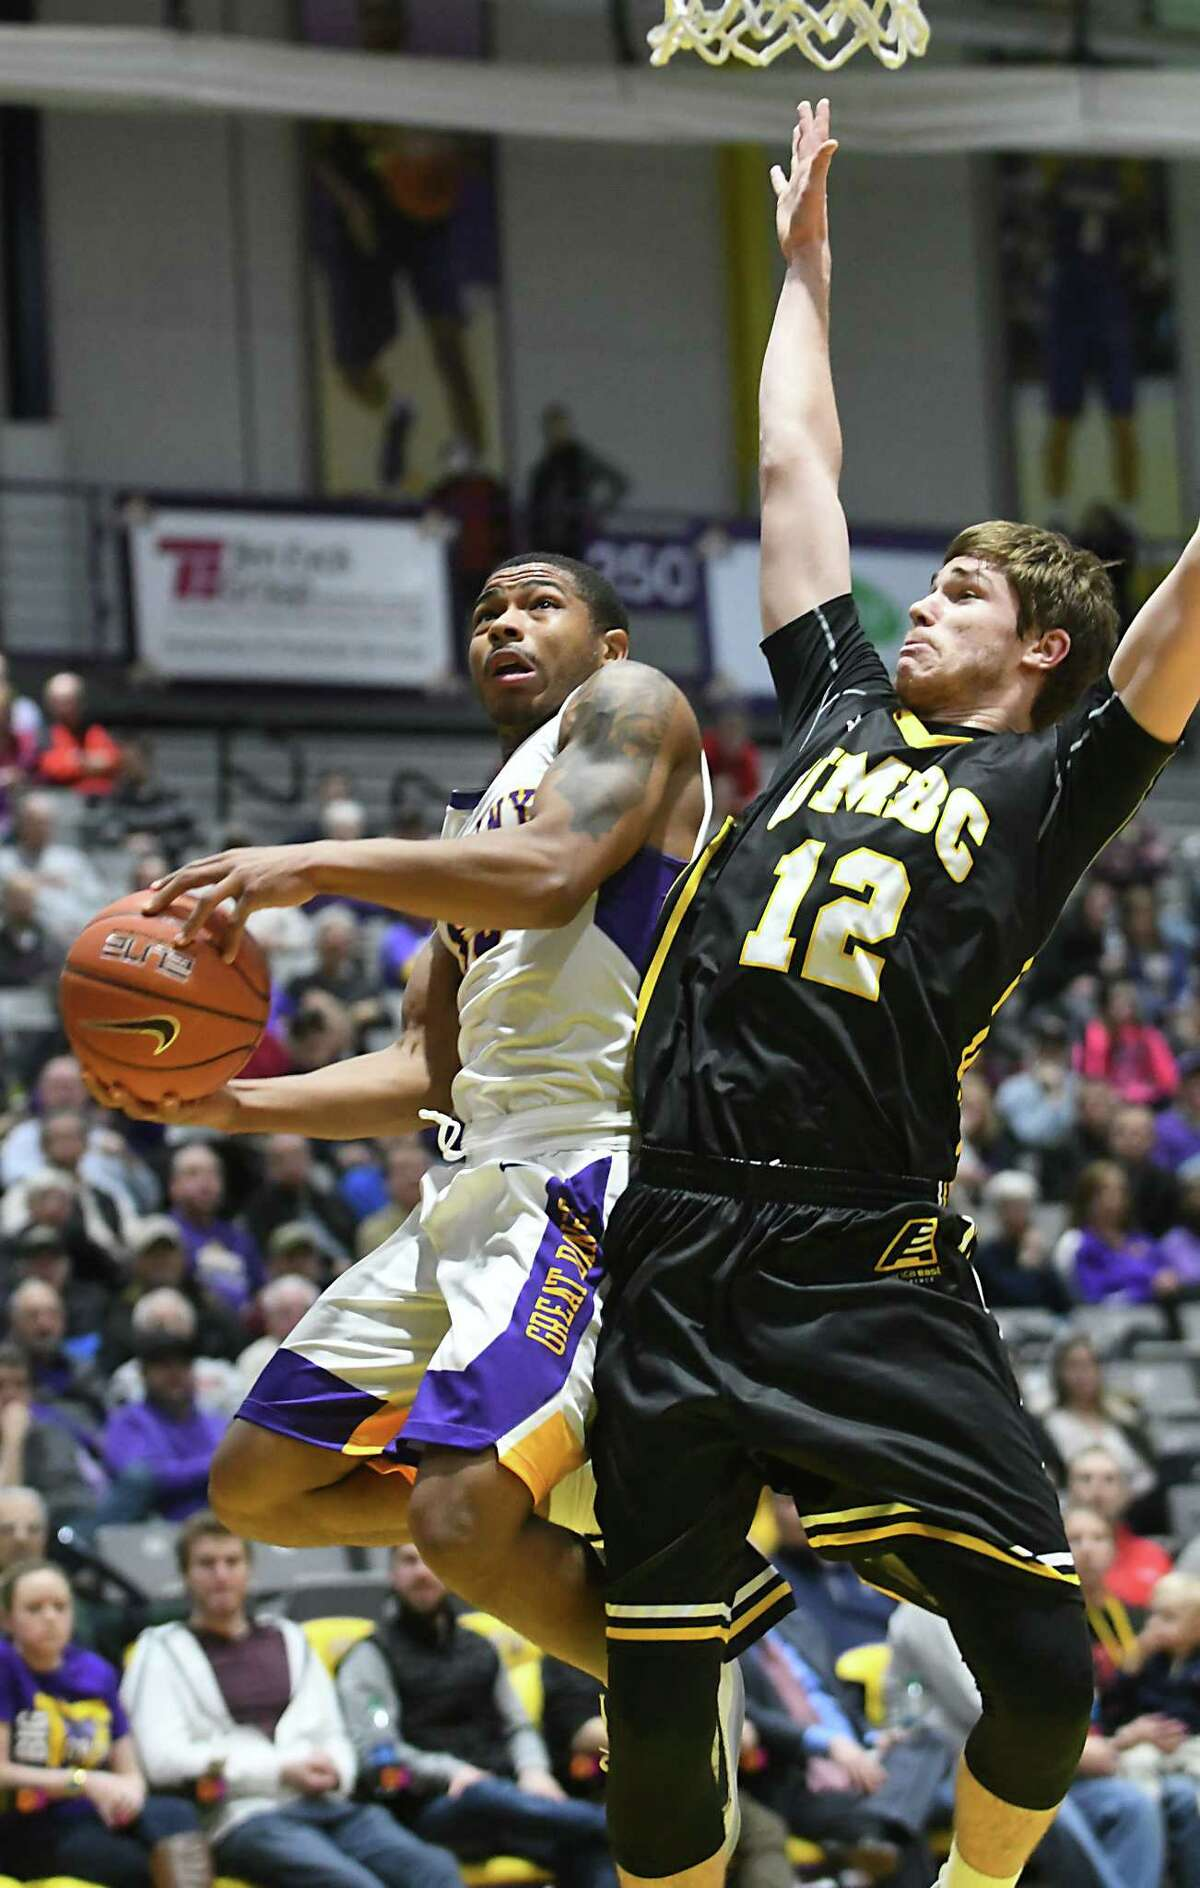 University at Albany's David Nichols is defended by UMBC's Will Darley as he drives to the hoop during a basketball game at the SEFCU Arena on Wednesday, Feb. 15, 2017 in Albany, N.Y. (Lori Van Buren / Times Union)